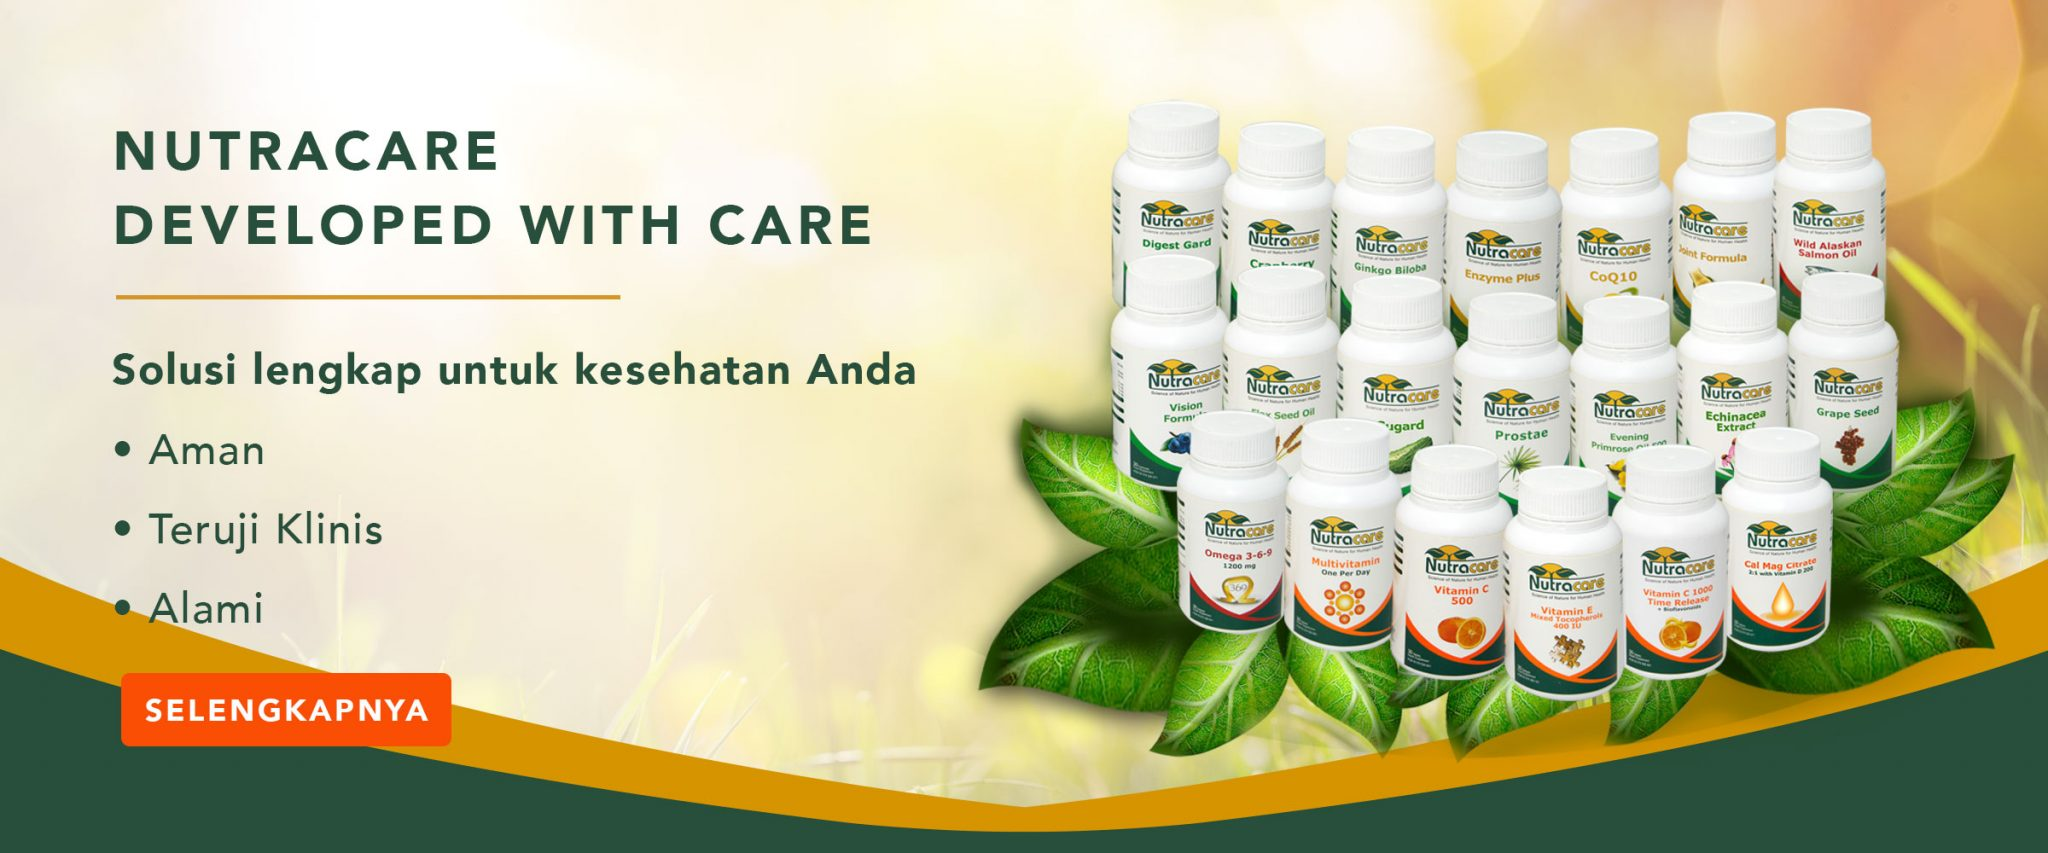 Nutracare Developed with Care